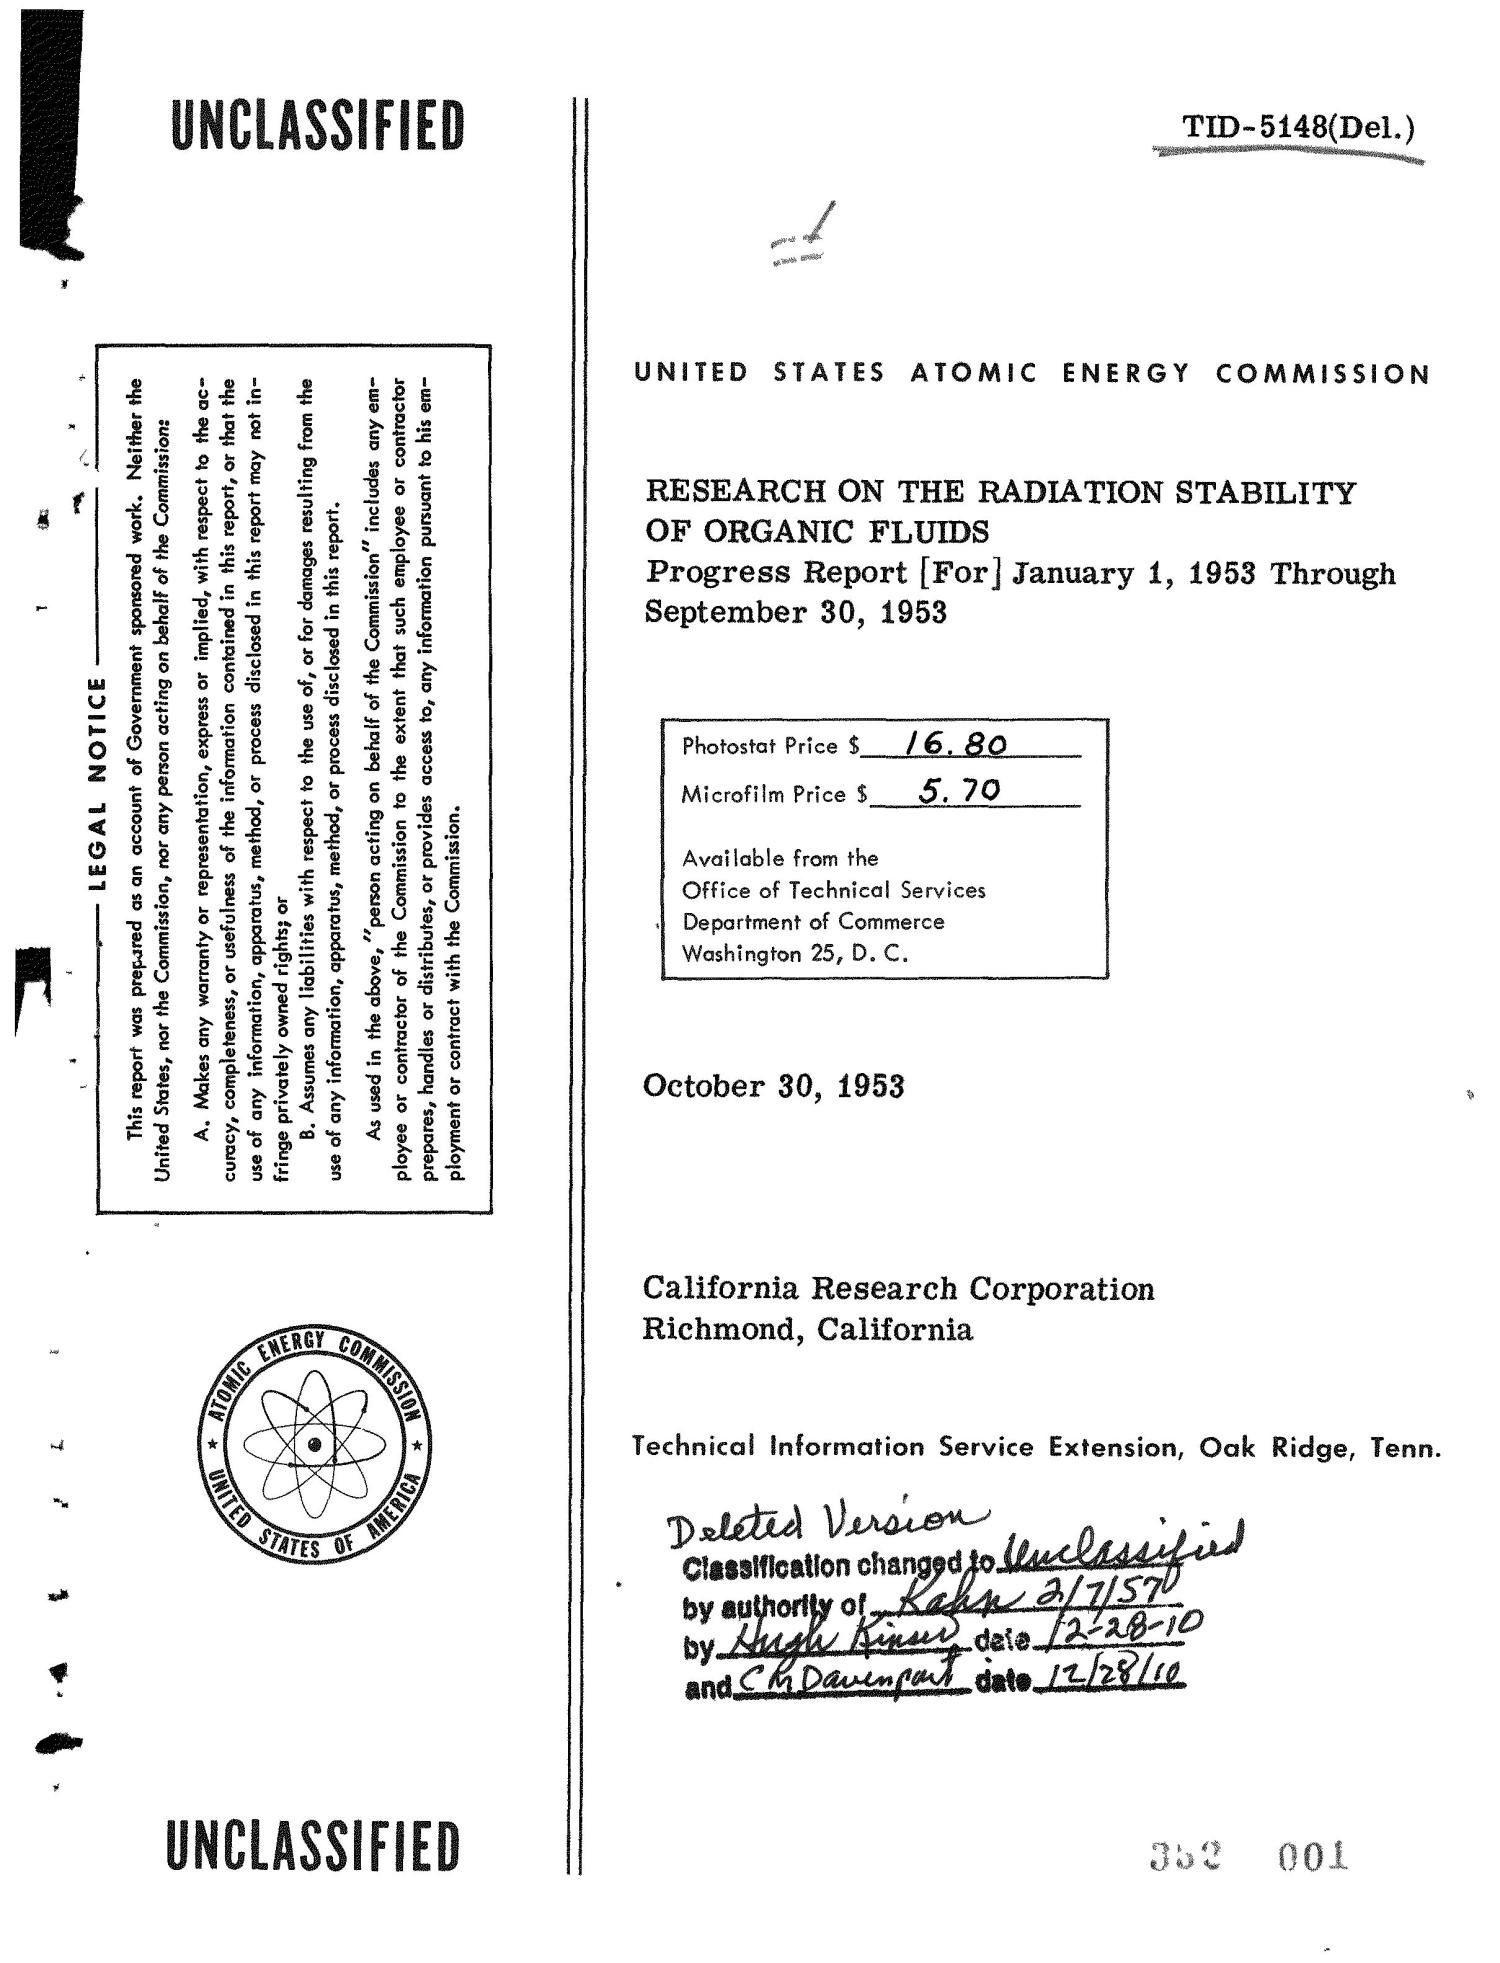 RESEARCH ON THE RADIATION STABILITY OF ORGANIC FLUIDS. Progress Report for January 1, 1953 through September 30, 1953. Report No. 6                                                                                                      [Sequence #]: 1 of 108